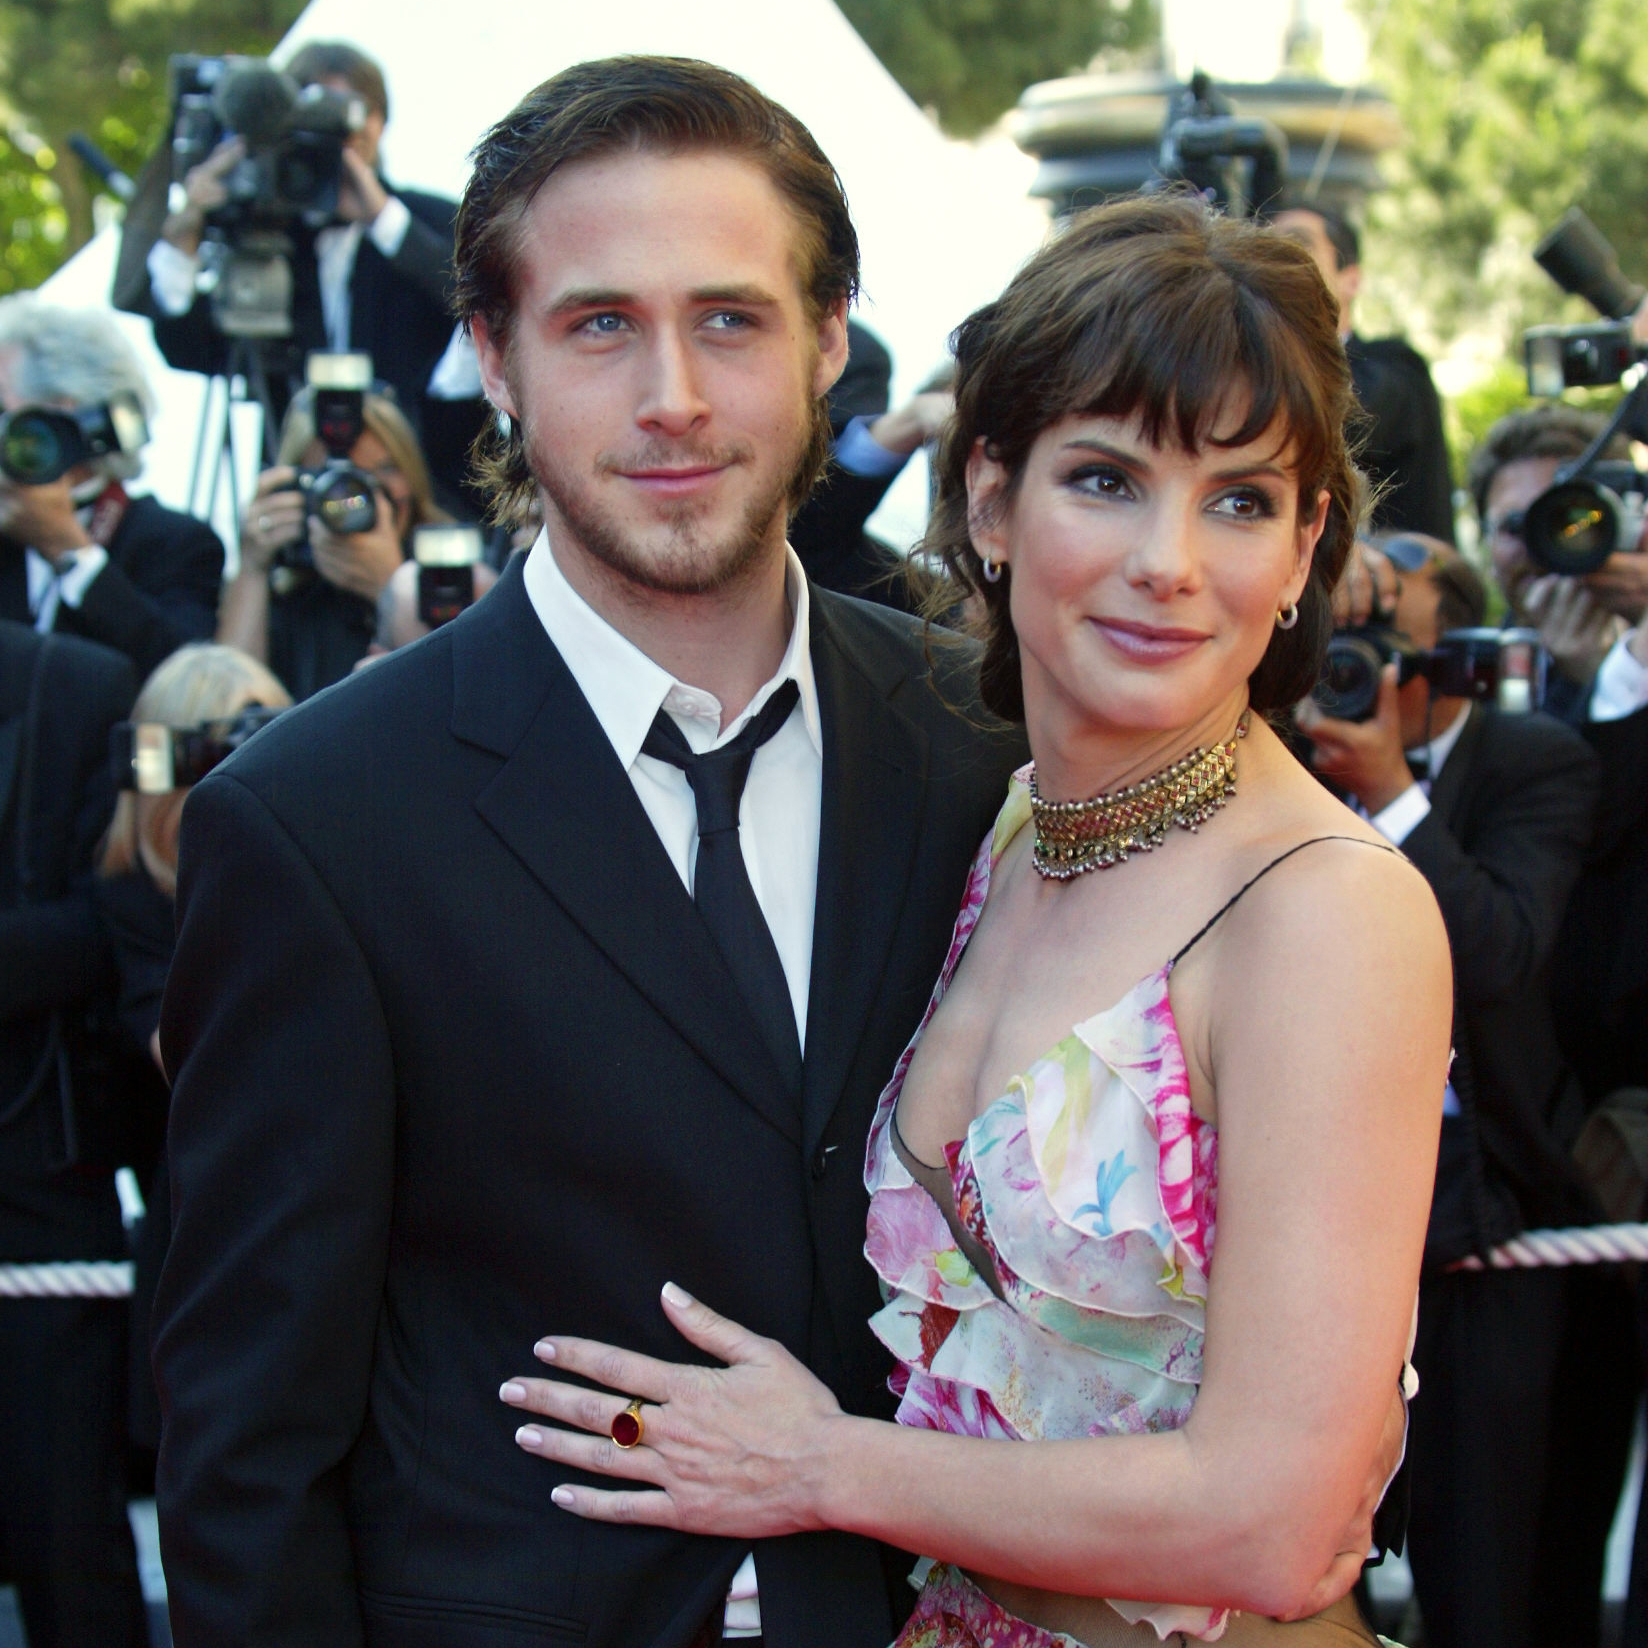 Cannes Film Festival Couples Through the Years